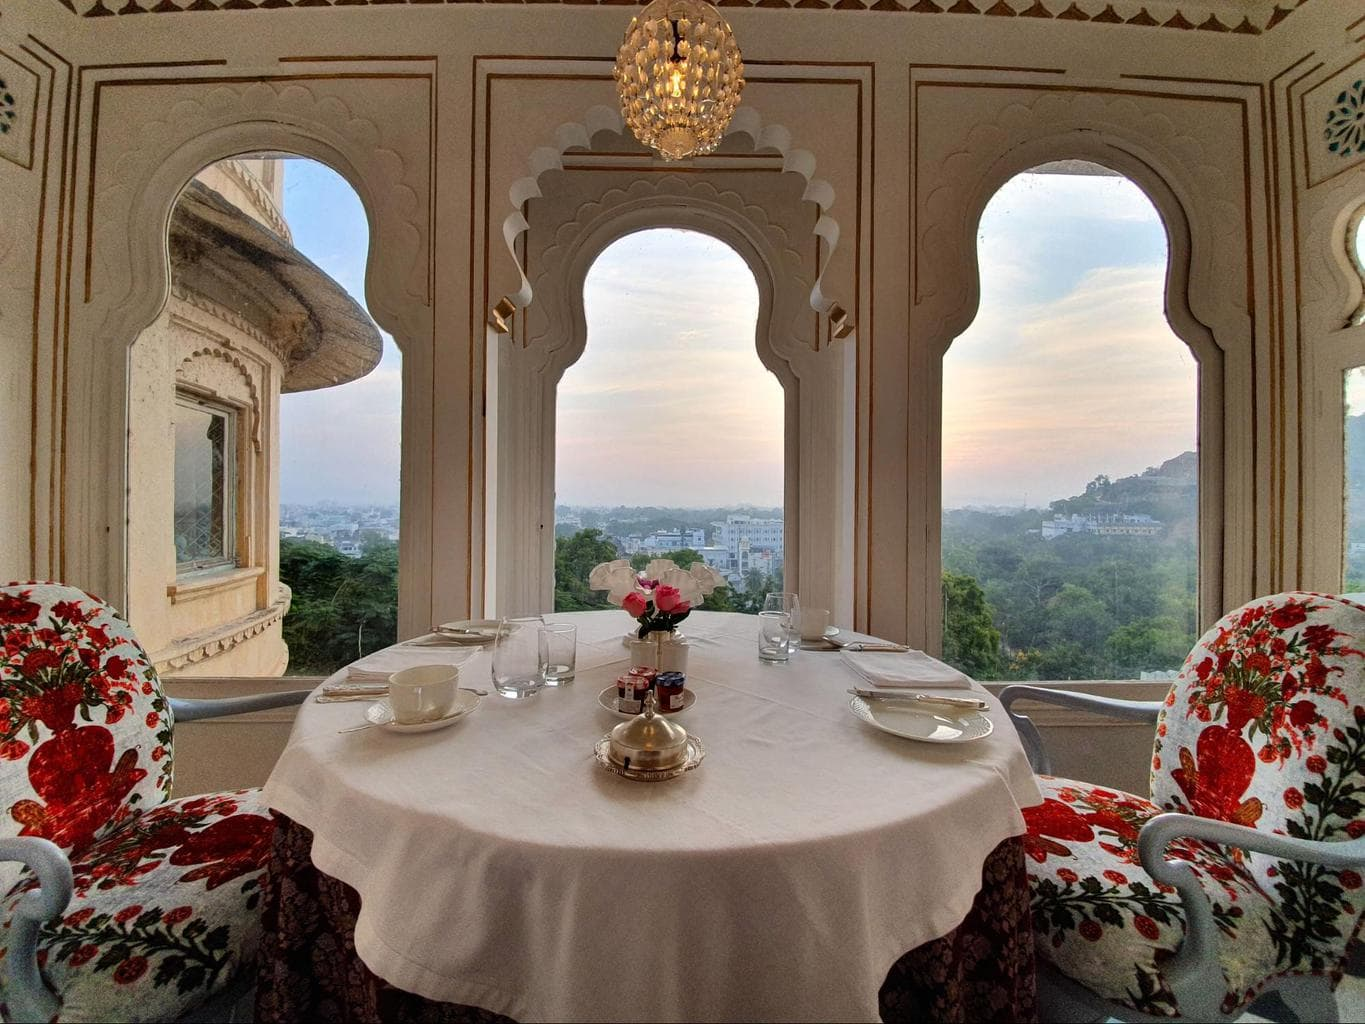 Breakfast views from Shiv Niwas Palace